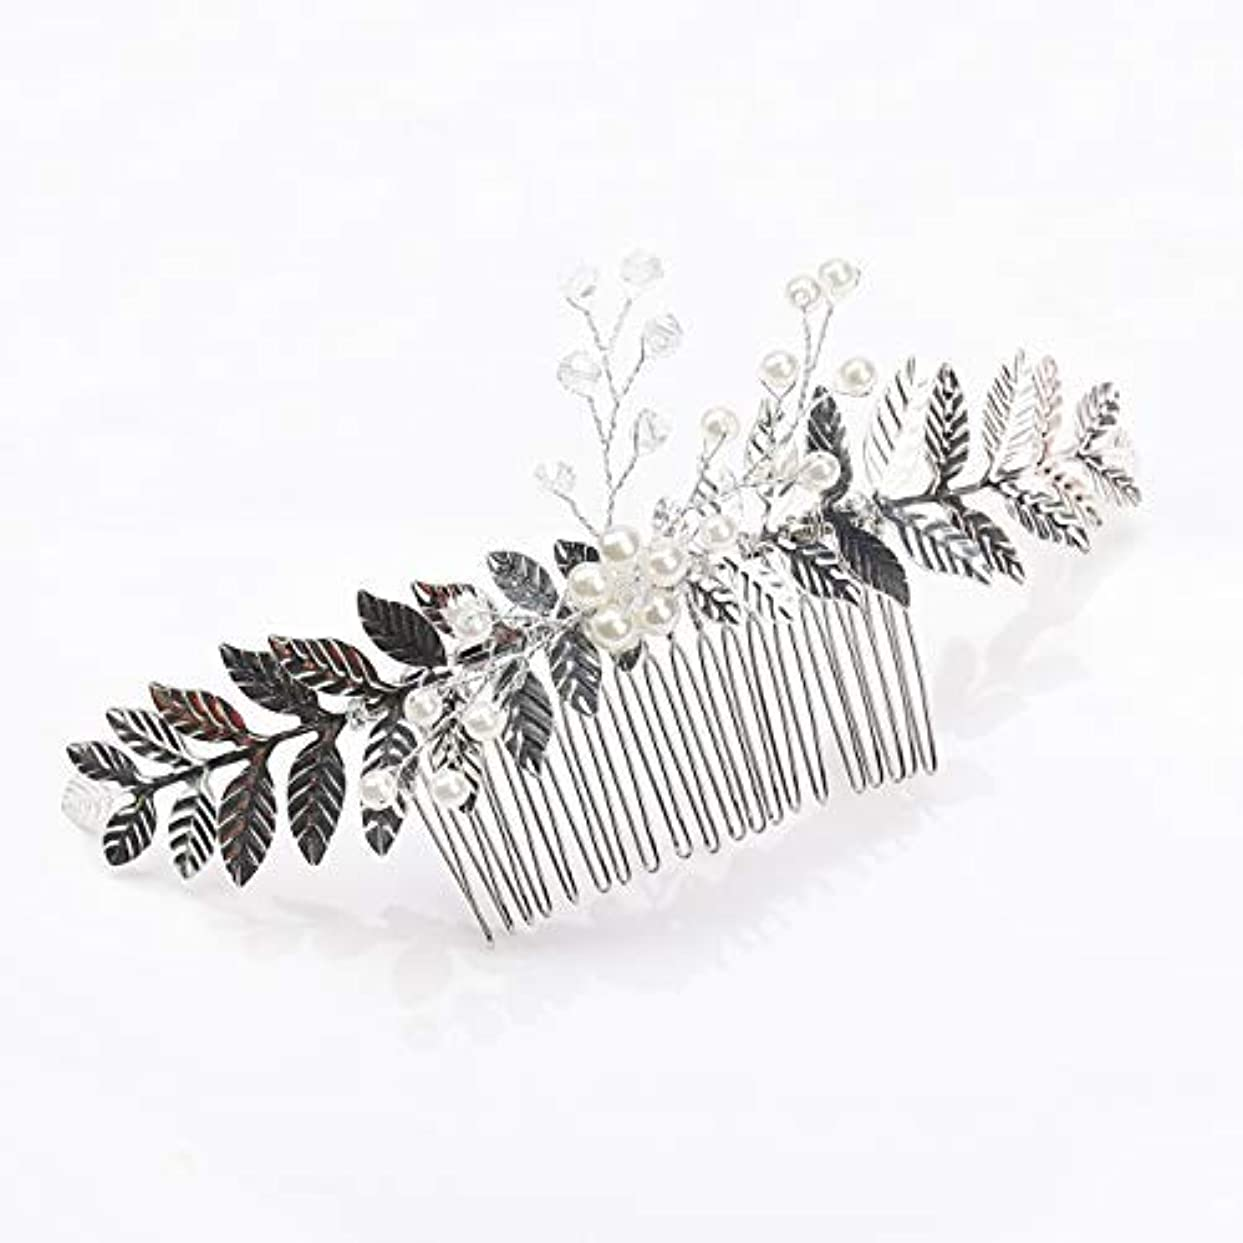 構築する厚さ自治Kercisbeauty Rustic Wedding Oliver Branch Pearl Flower and Crystal Hair Comb for Bride Bridesmaid Prom Headpiece...